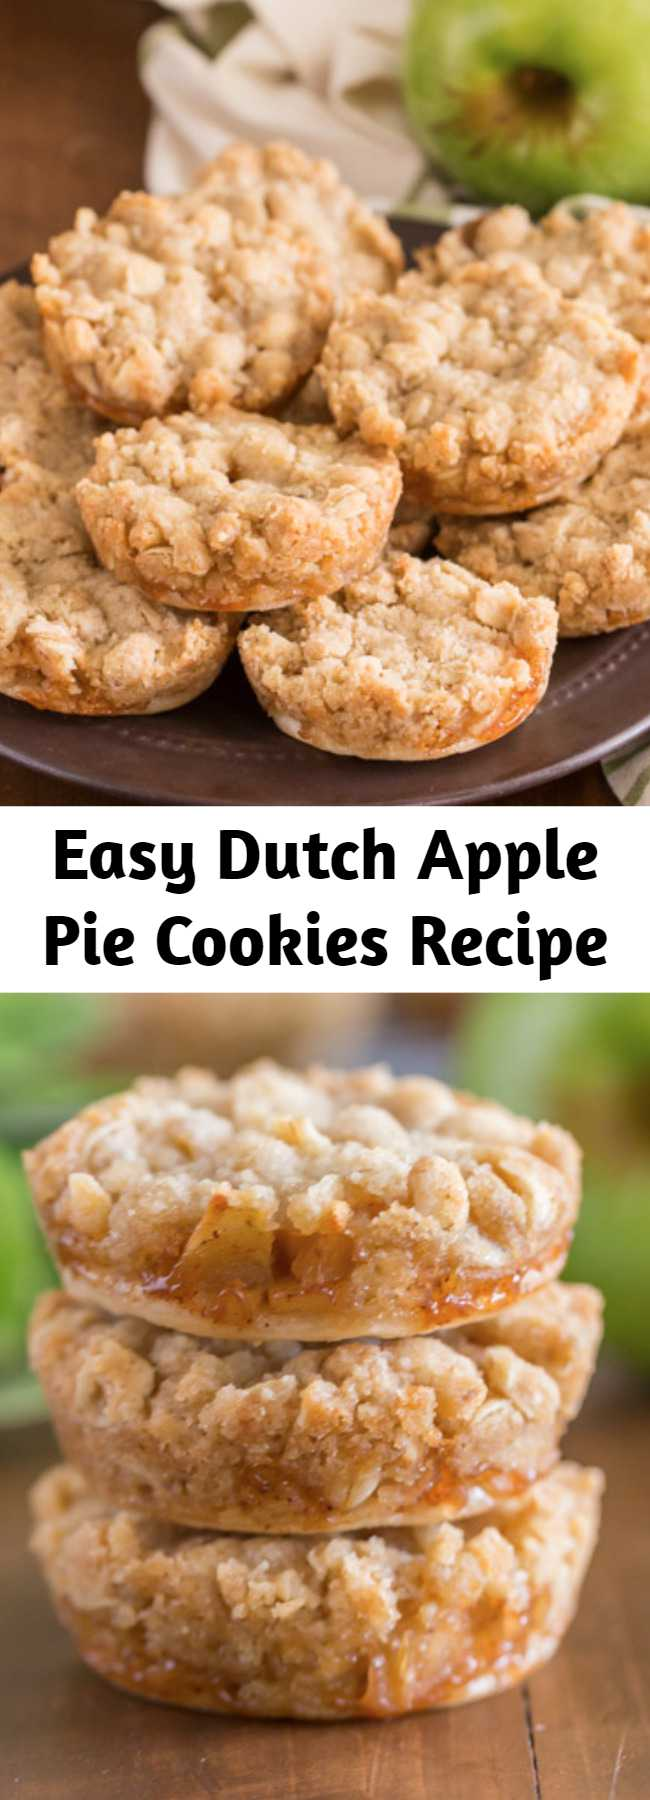 Easy Dutch Apple Pie Cookies Recipe - These are the perfect little three bite apple pie -slash- cookie.  They have a circle of pie crust on the bottom, then a layer of finely diced cinnamon apple filling, with the most delicious, sweet, buttery crumb topping.